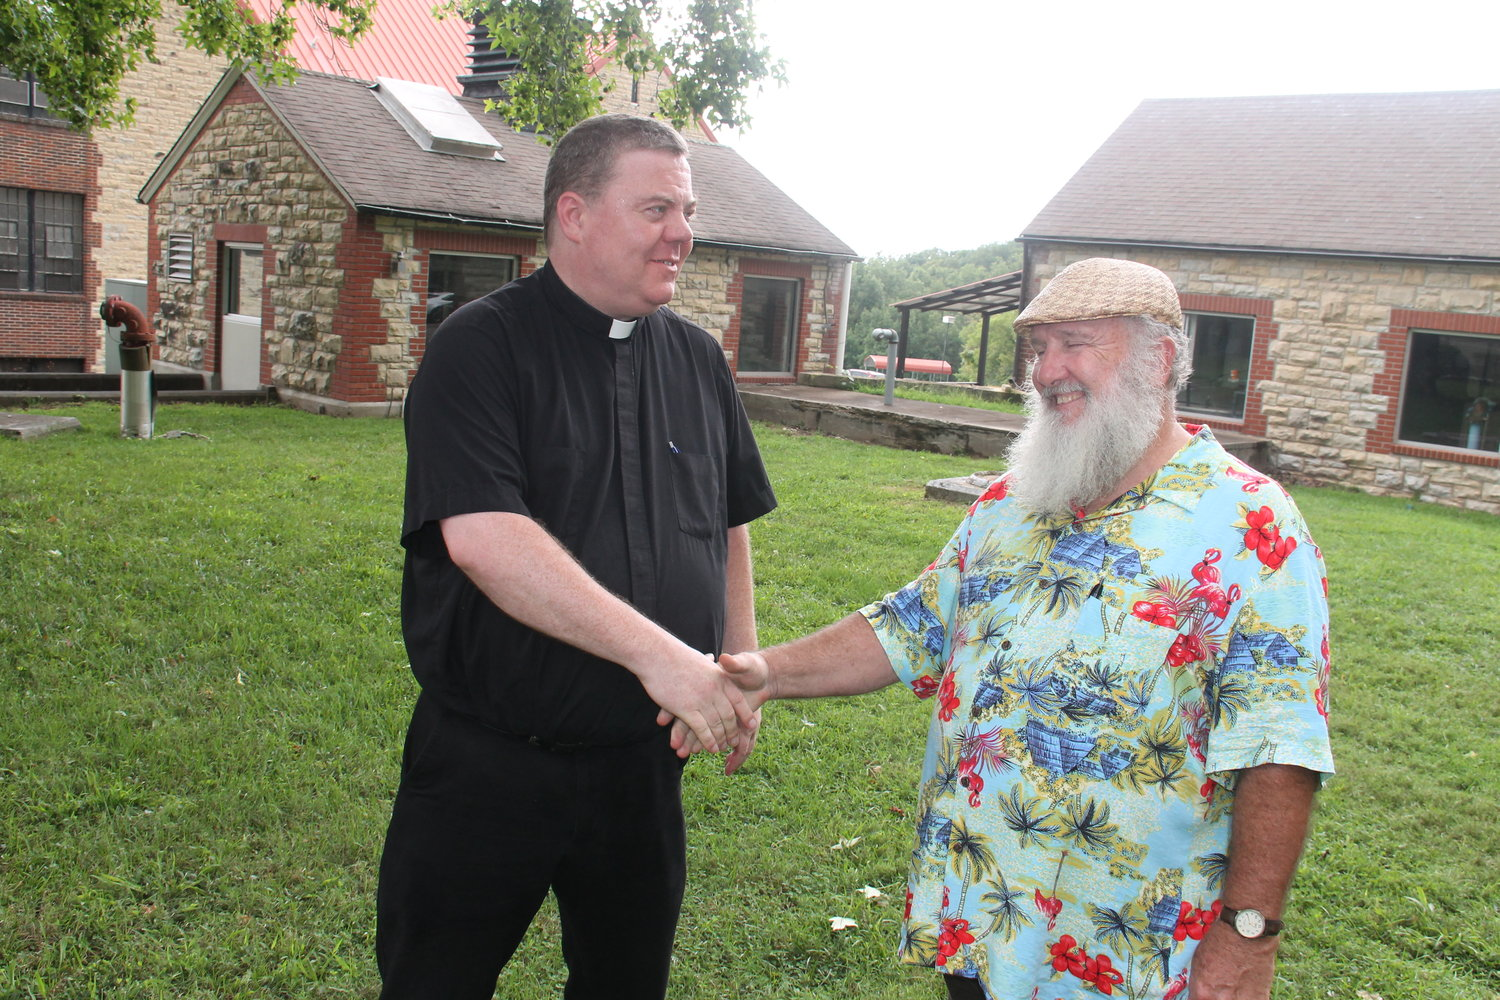 Father Joseph Corel, vicar for prison ministry and pastor of the parishes in Pettis County, and Chaplain Jeff Anderson of the Algoa Correctional Center in Jefferson City shake hands after the Adrian Group appreciation barbecue outside ACC.